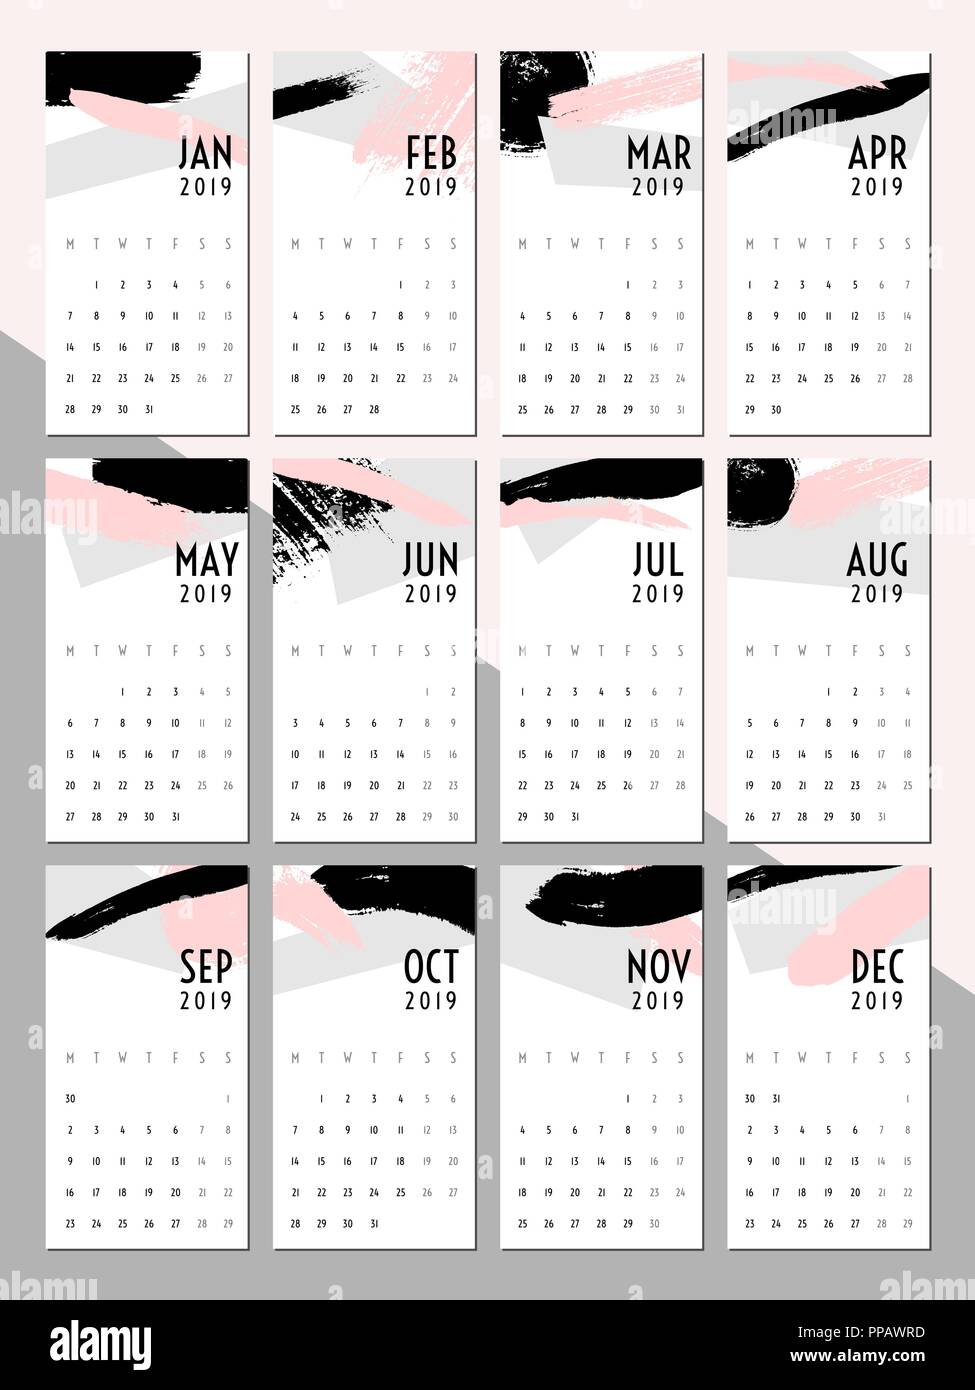 Printable 2019 Calendar Template Abstract Design With Textured